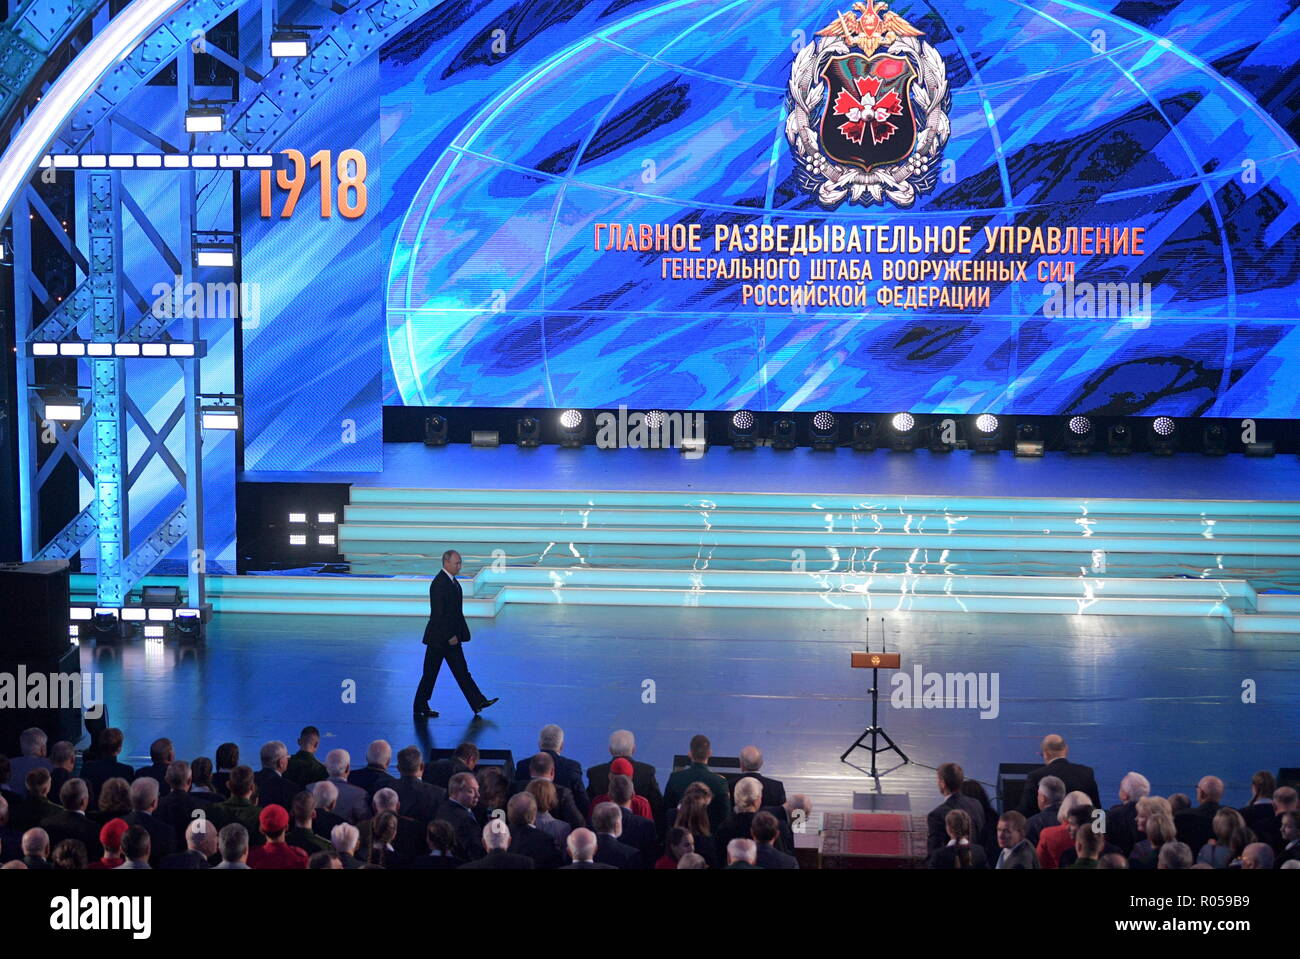 Moscow, Russia. 02nd Nov, 2018. MOSCOW, RUSSIA - NOVEMBER 2, 2018: Russia's President Vladimir Putin attends an event marking the 100th birthday of the Main Directorate of the Russian Armed Forces' General Staff at the Russian Army Theatre on Day of Military Intelligence Officer. Alexei Druzhinin/Russian Presidential Press and Information Office/TASS Credit: ITAR-TASS News Agency/Alamy Live News - Stock Image